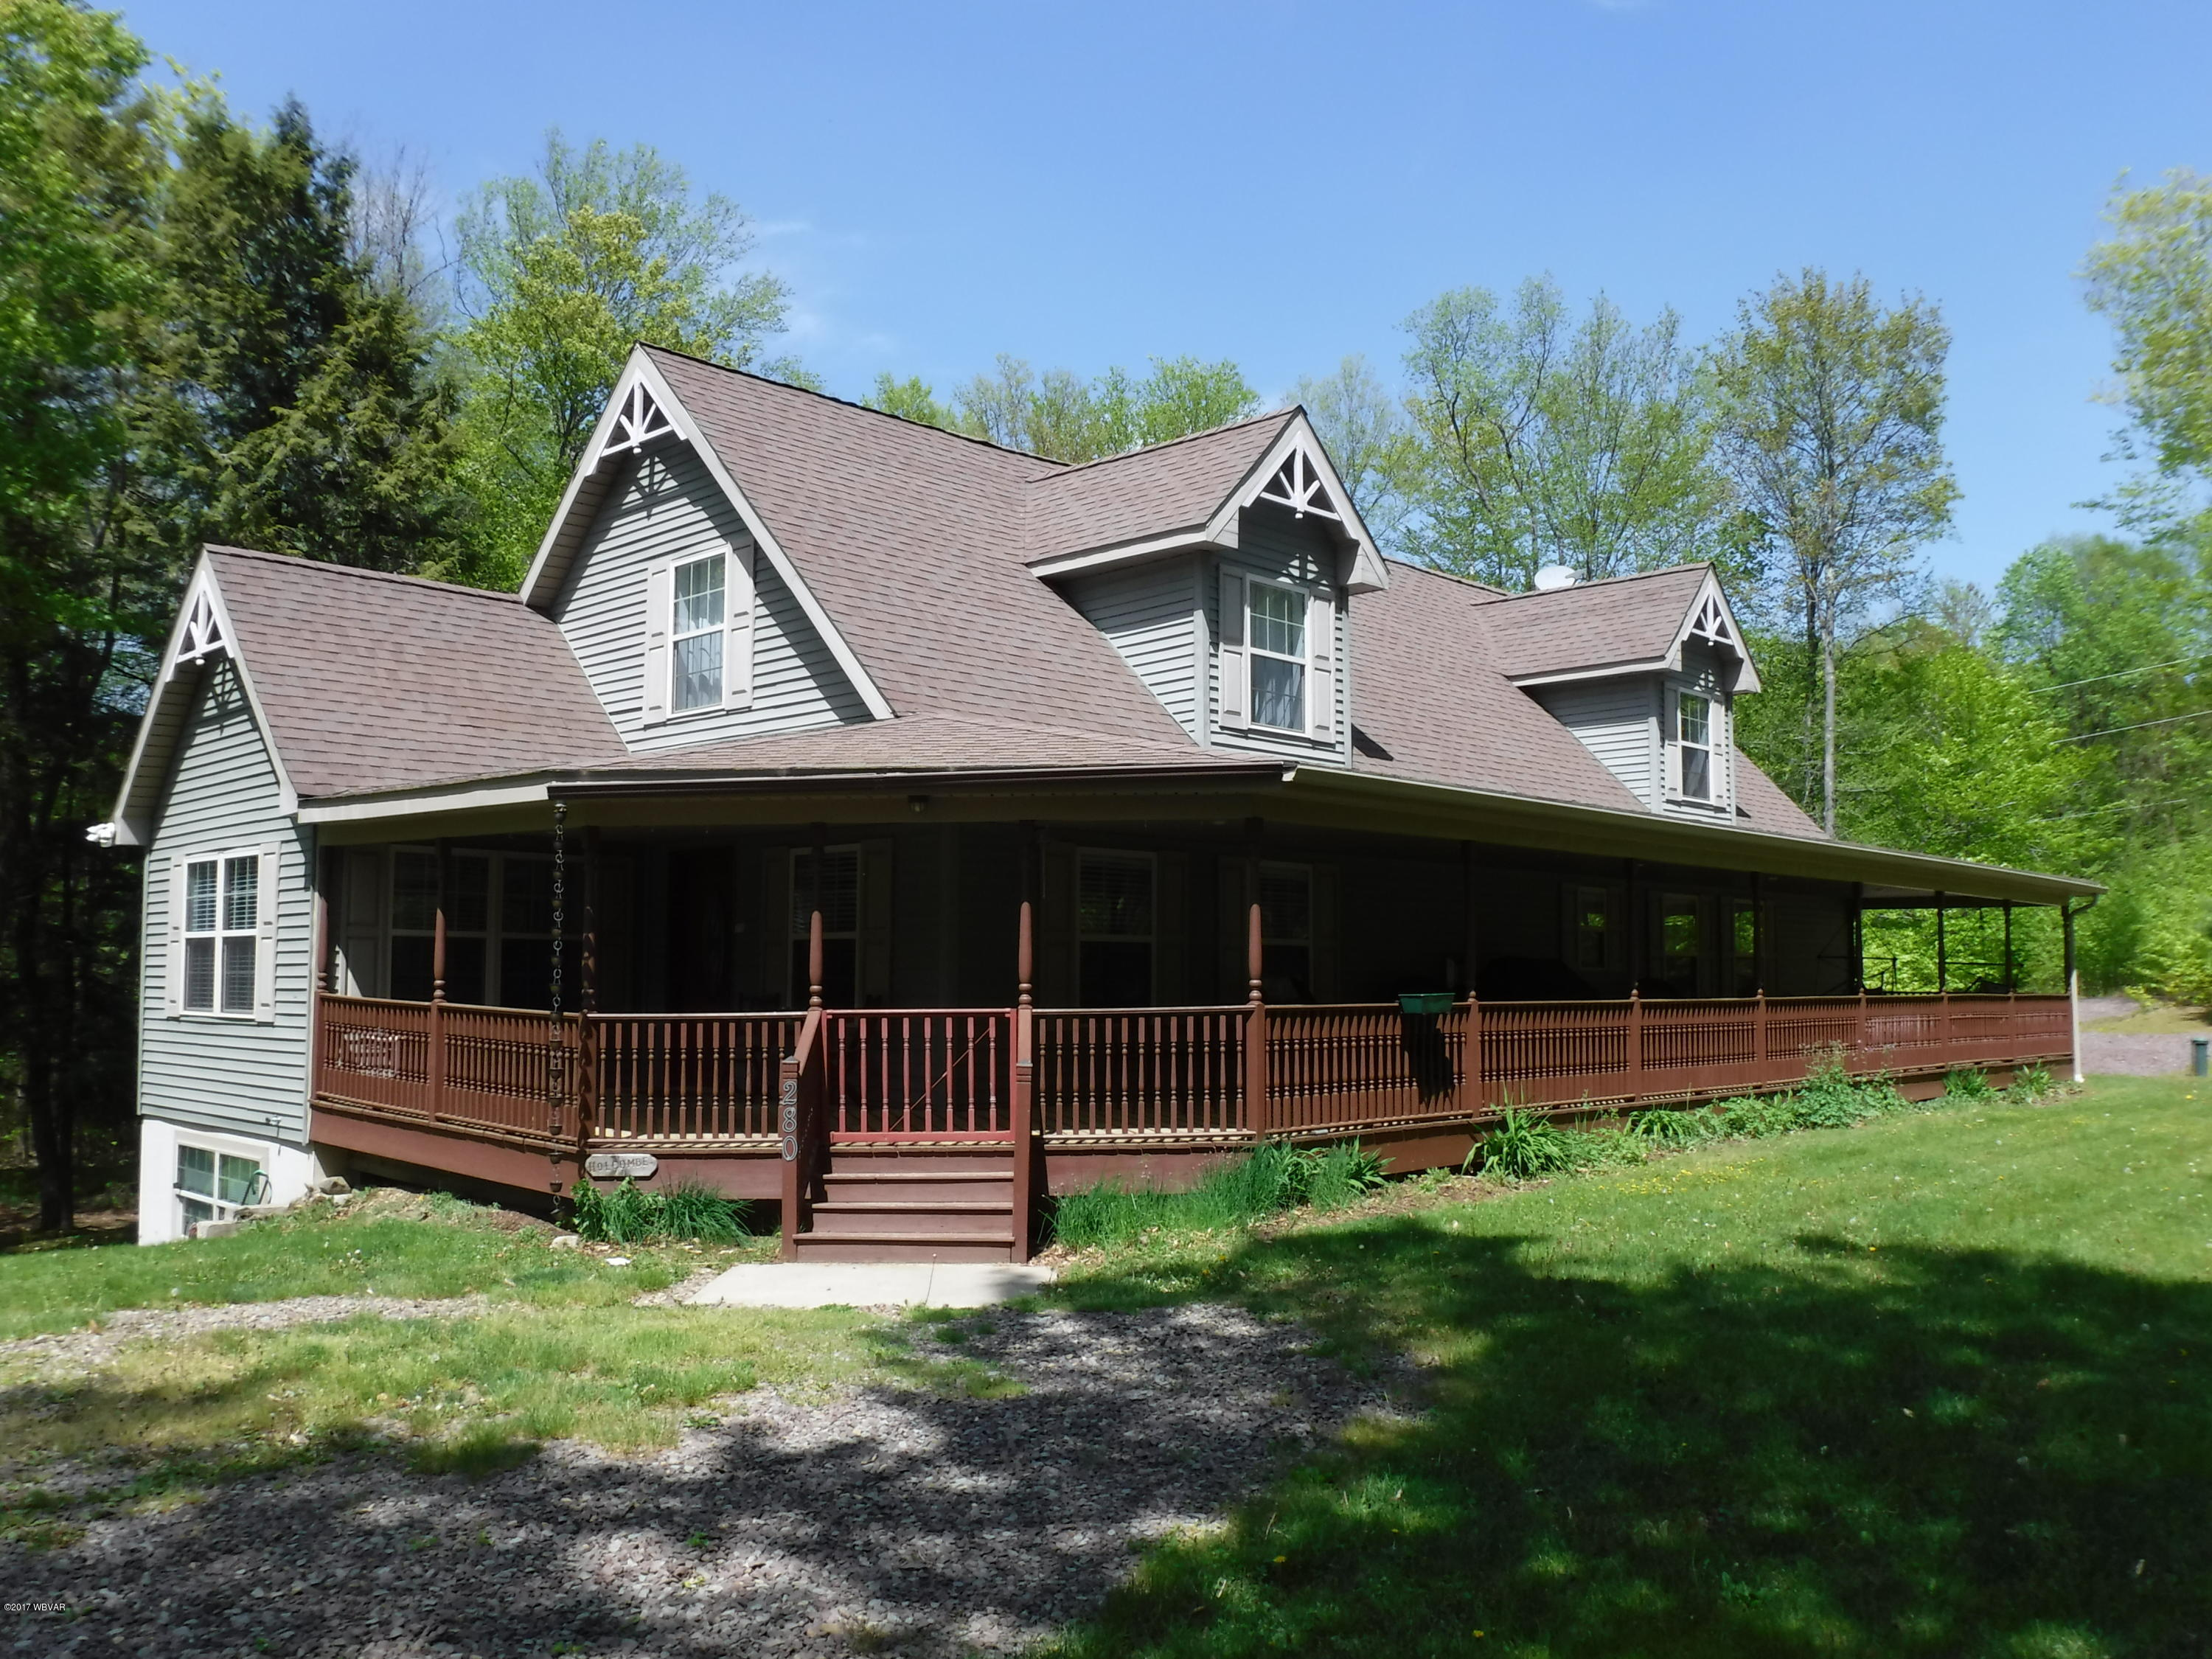 280 GROUSE WOODS DRIVE,Laporte,PA 18626,3 Bedrooms Bedrooms,4 BathroomsBathrooms,Residential,GROUSE WOODS,WB-87013